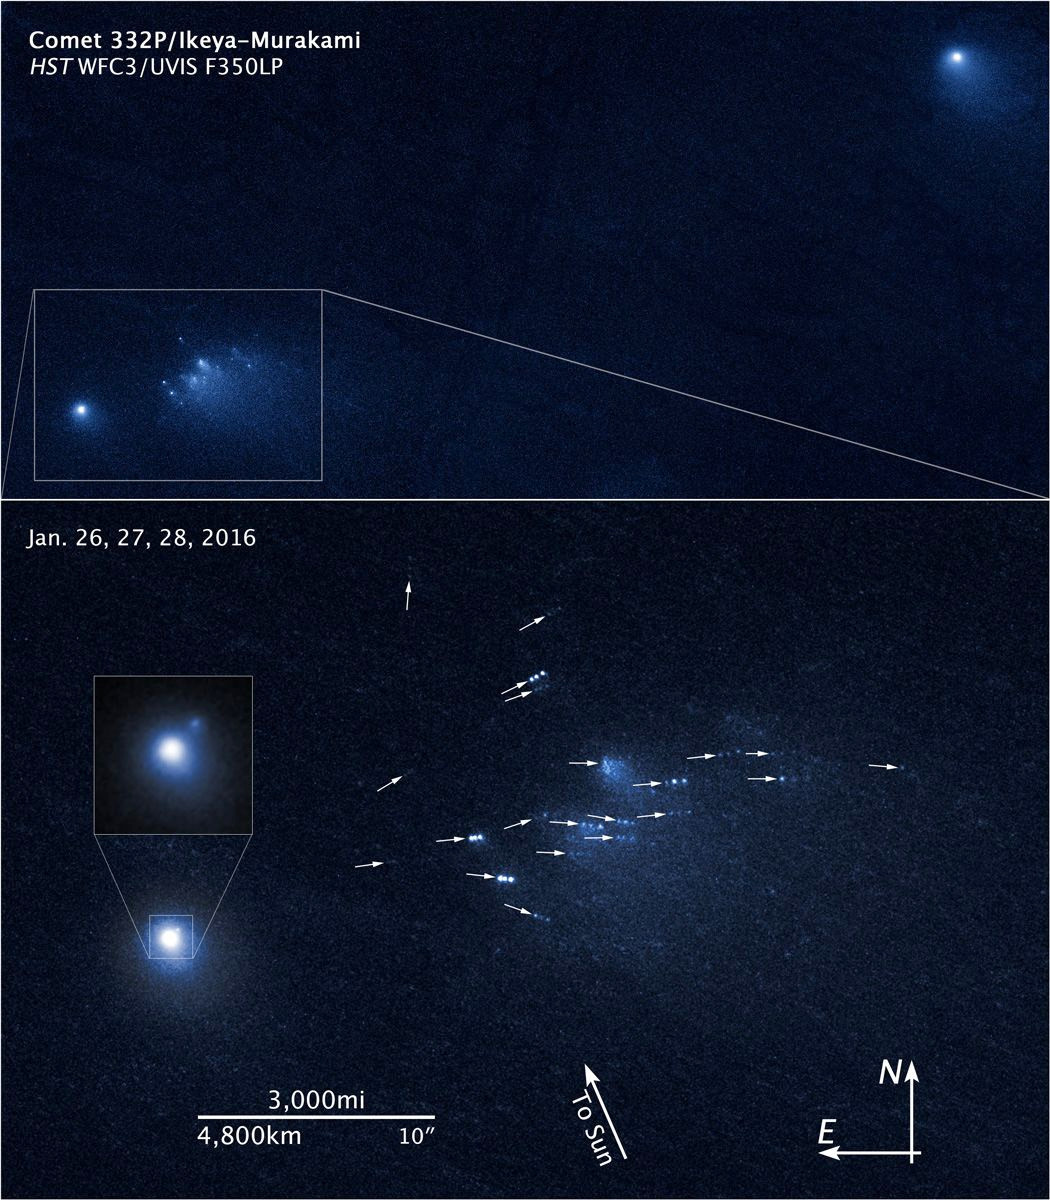 These NASA/ESA Hubble Space Telescope images show the migration of building-sized chunks of comet 332P/Ikeya-Murakami. The comet is disintegrating as it approaches the Sun. The image at the top shows the main nucleus of comet 332P at the lower left together with a wayward cloud of pieces of the comet which broke off between October and December 2015. Hubble spied the debris in January 2016. The object at the upper right results from an earlier split that probably occurred in 2012. The image at the bottom was made from multiple exposures taken over three days, 26-28 January 2016, with Hubble's Wide Field Camera 3. Arrows show the direction of the slowly moving comet pieces. Image credit: NASA, ESA and David Jewitt/UCLA.